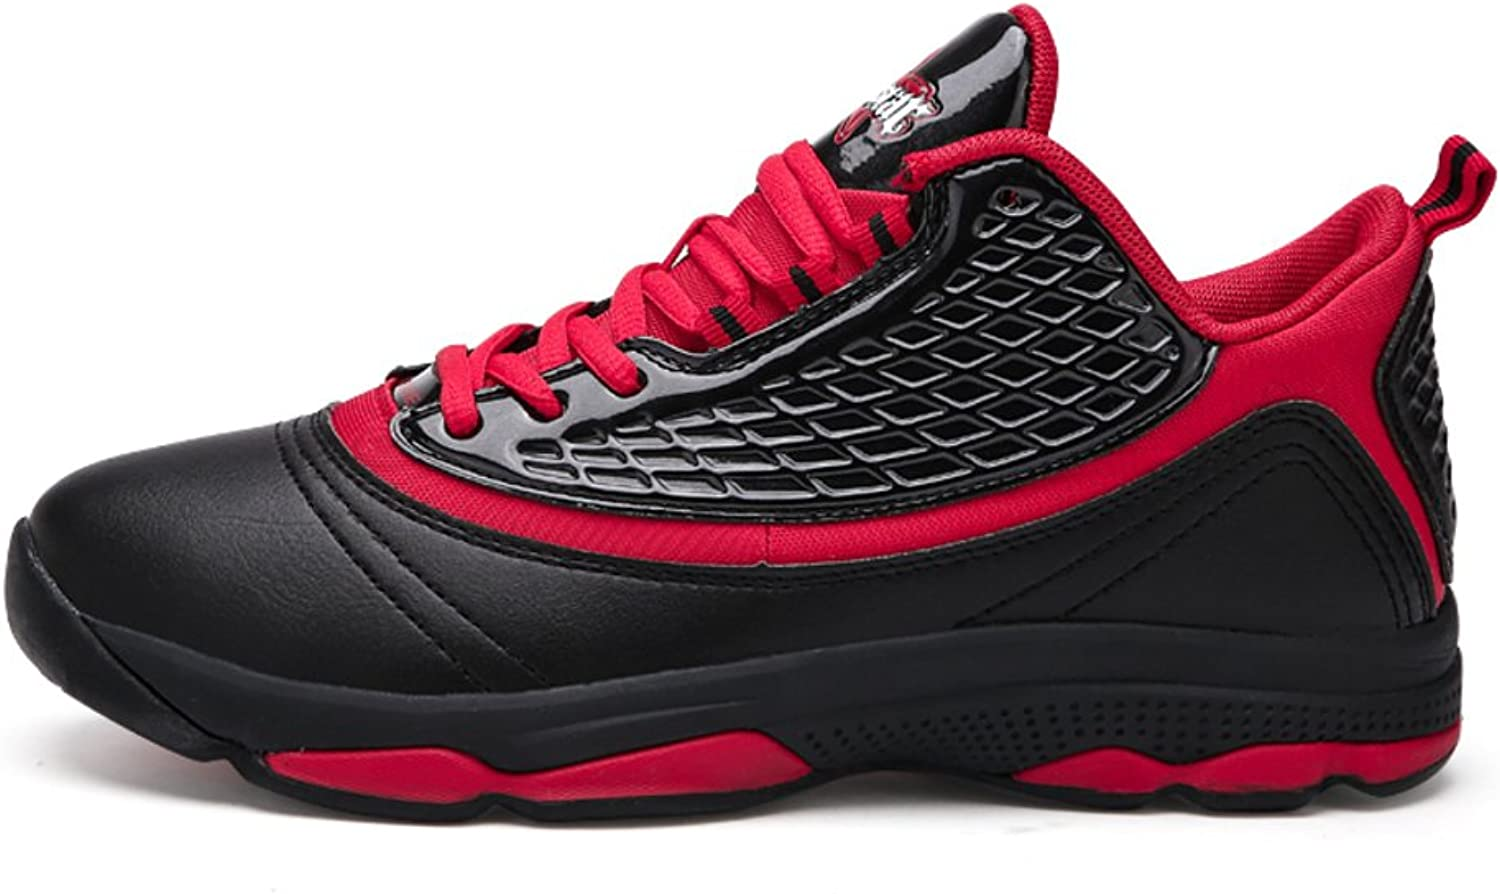 SPLNWTFHCNWPCB Basketball shoes Male Low-top Sneakers wear Sneakers